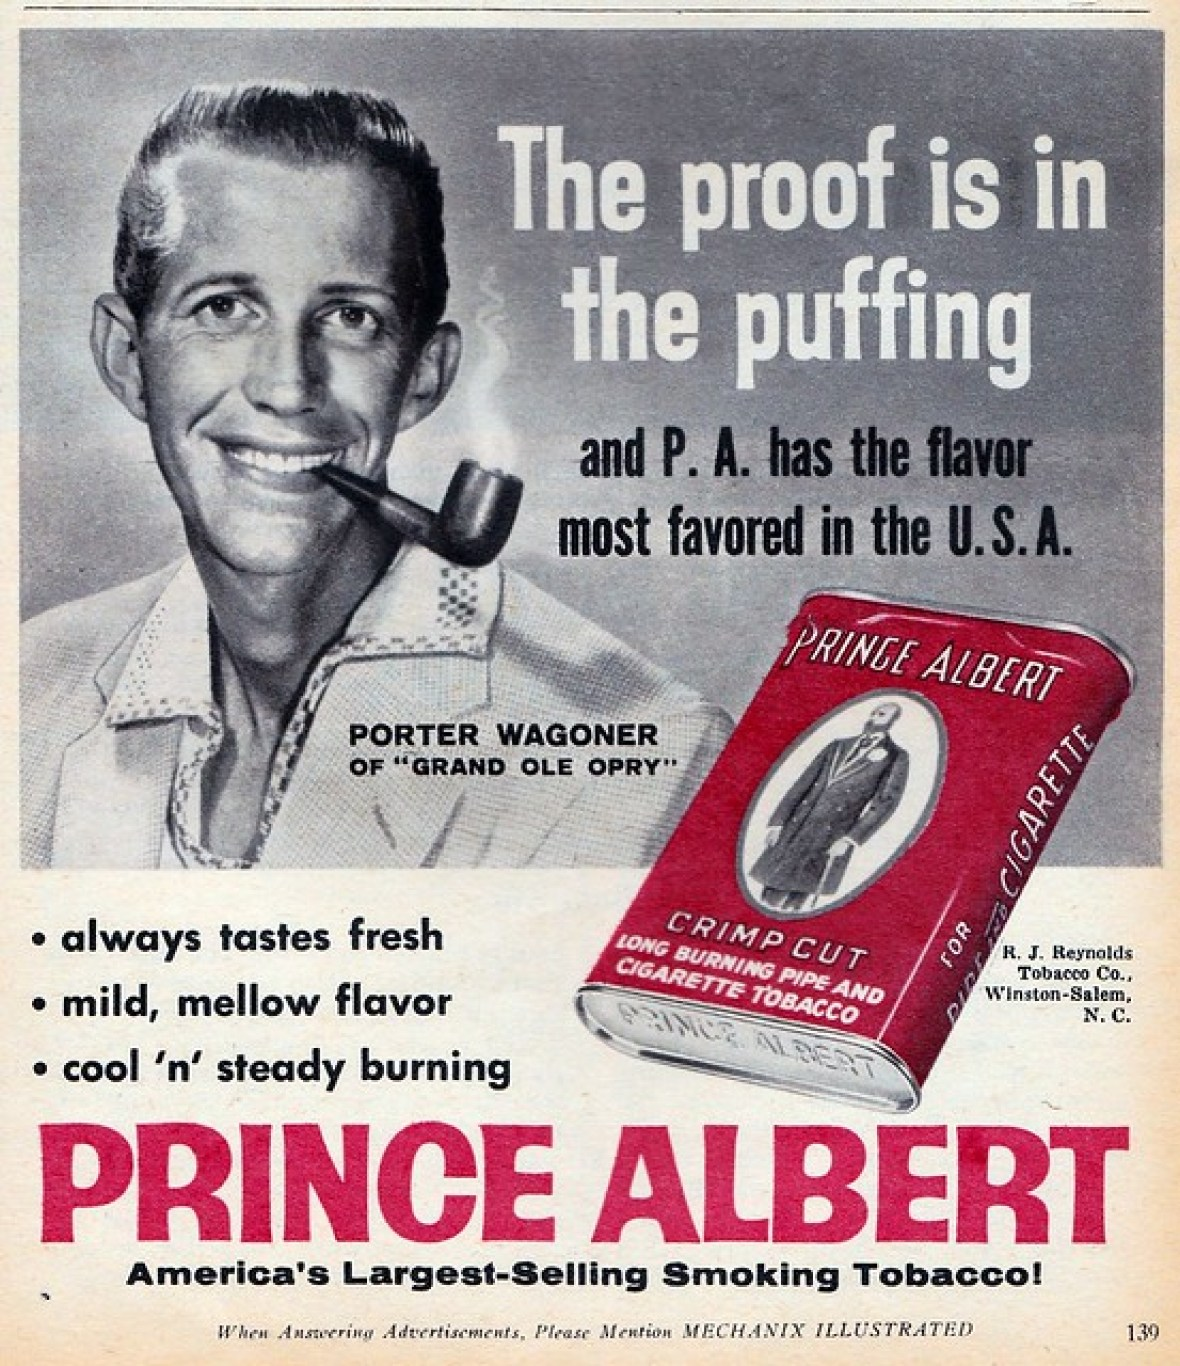 Prince Albert featuring Porter Wagoner - published in Mechanix Illustrated